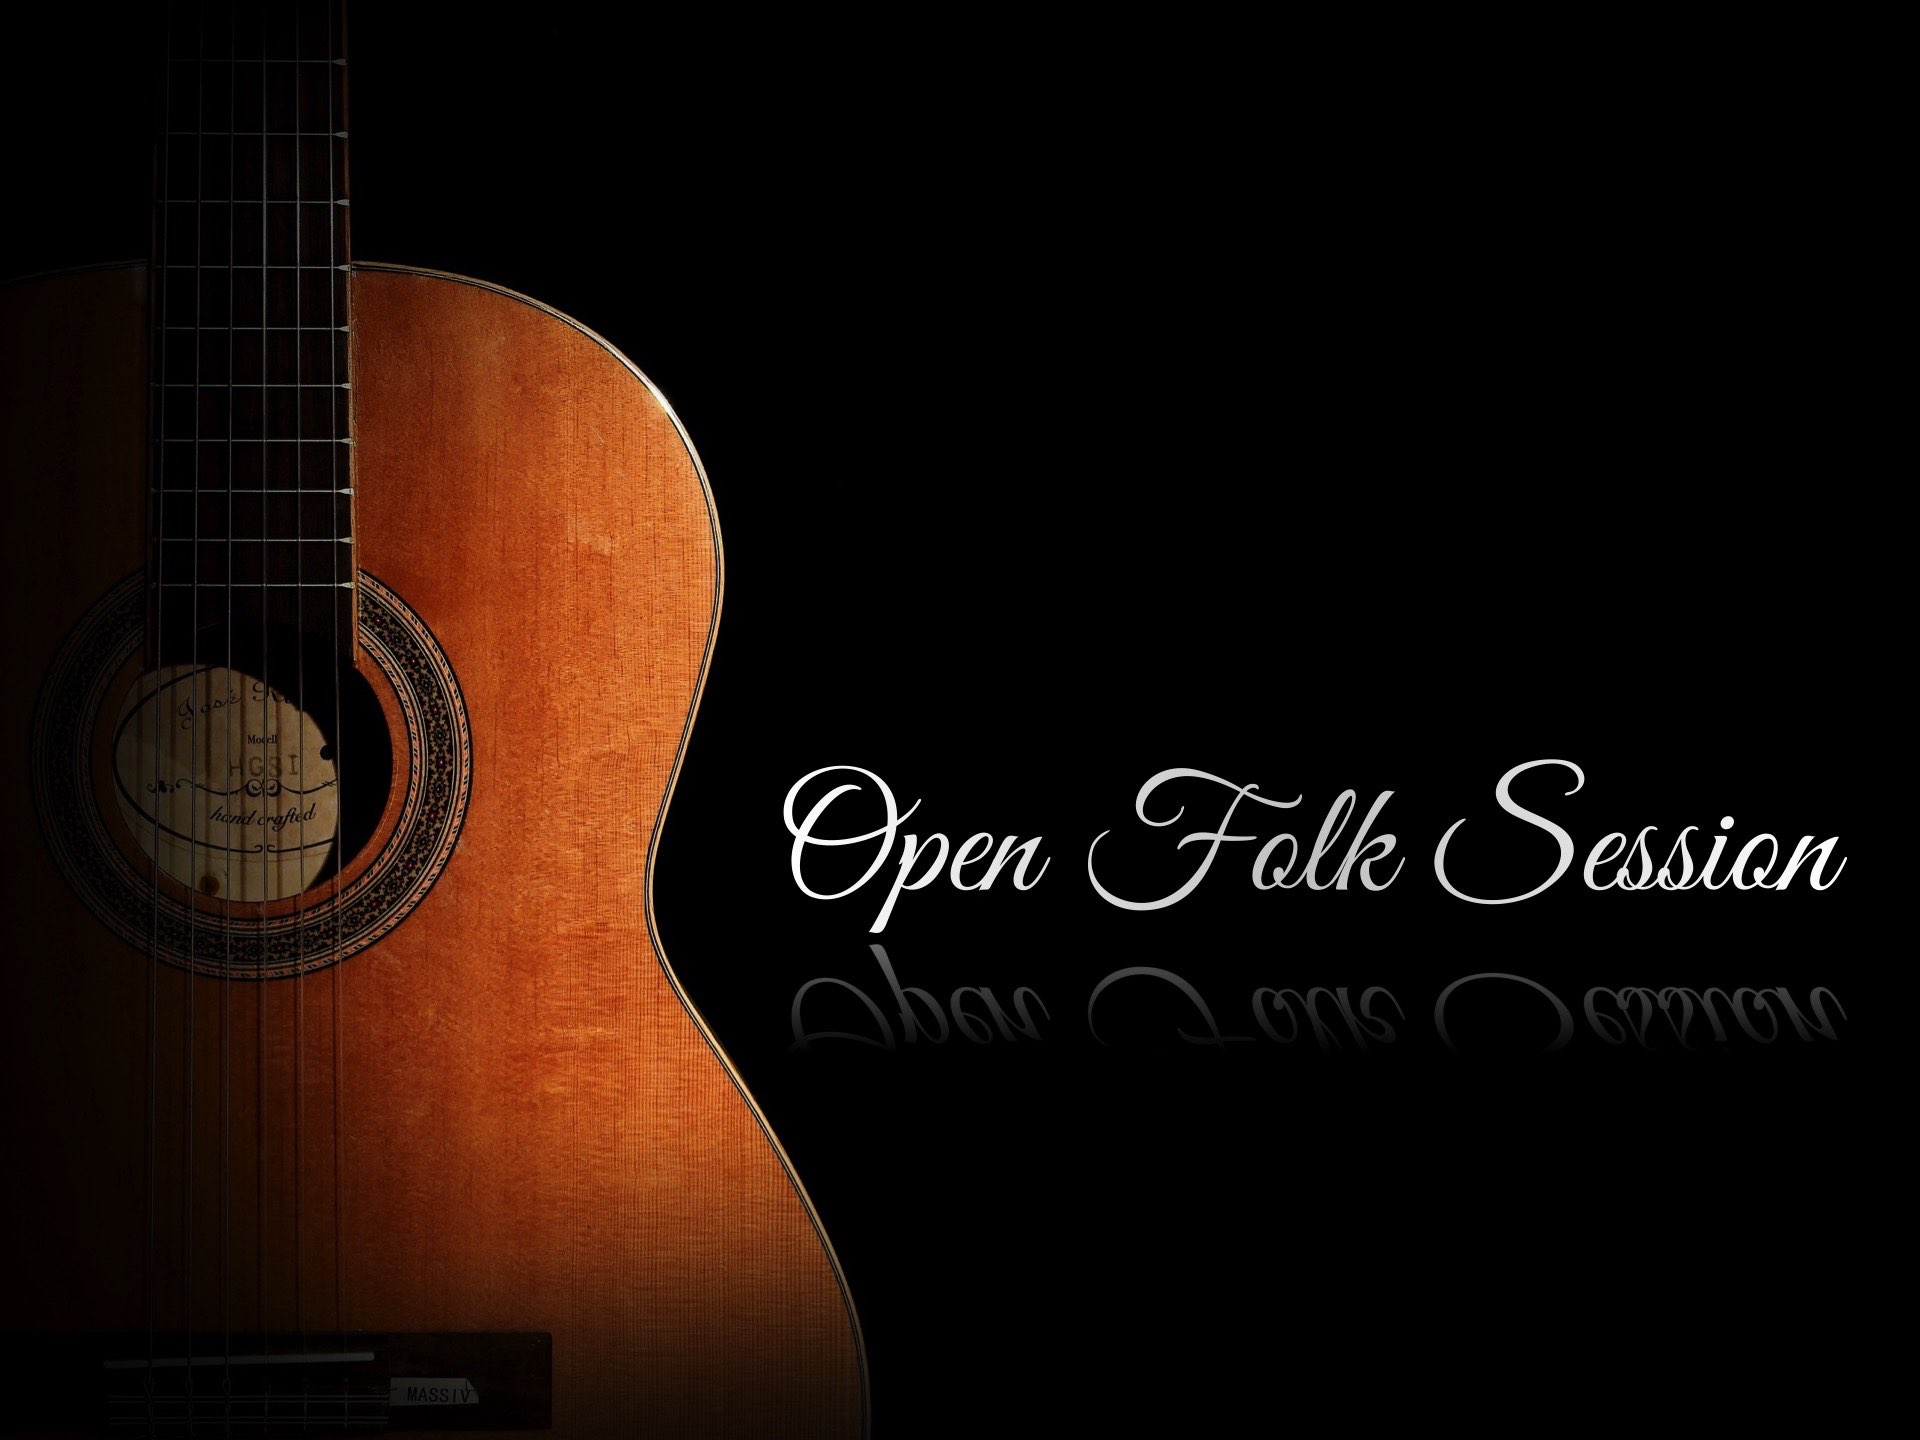 Open Folk Session